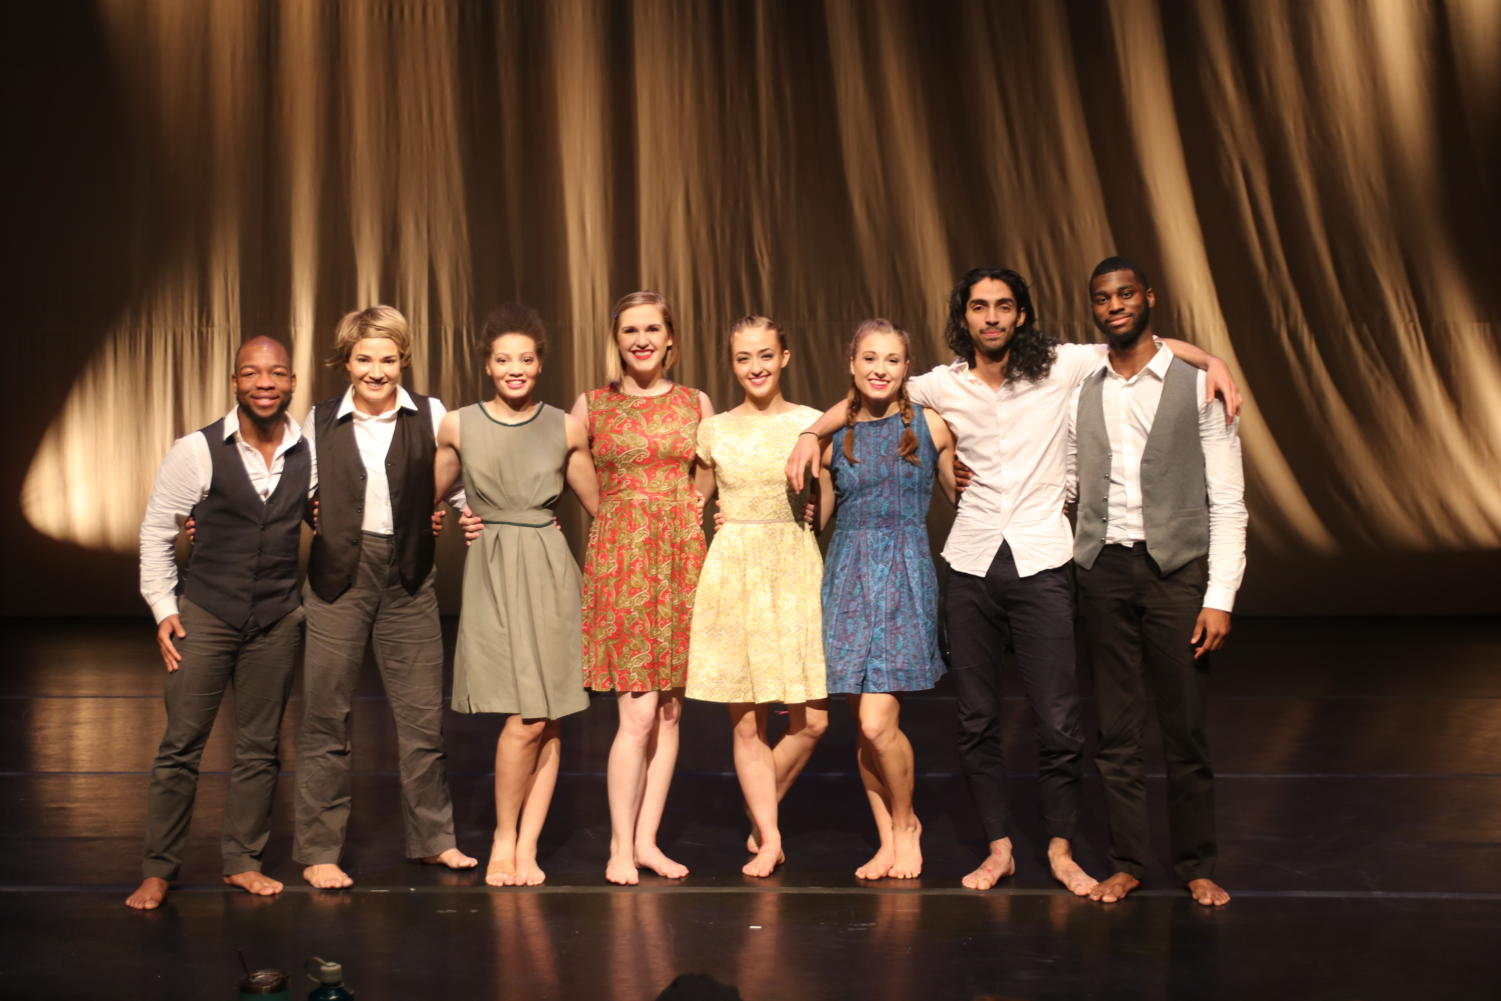 Dancers+from+Modern+American+Dance+Company+%28MADCO%29+pose+on+stage+after+performing+their+modern+dance+program%2C+%E2%80%9CWallstories%2C%E2%80%9D+a+commemoration+to+the+fall+of+the+Berlin+Wall+and+the+people+affected+by+it.